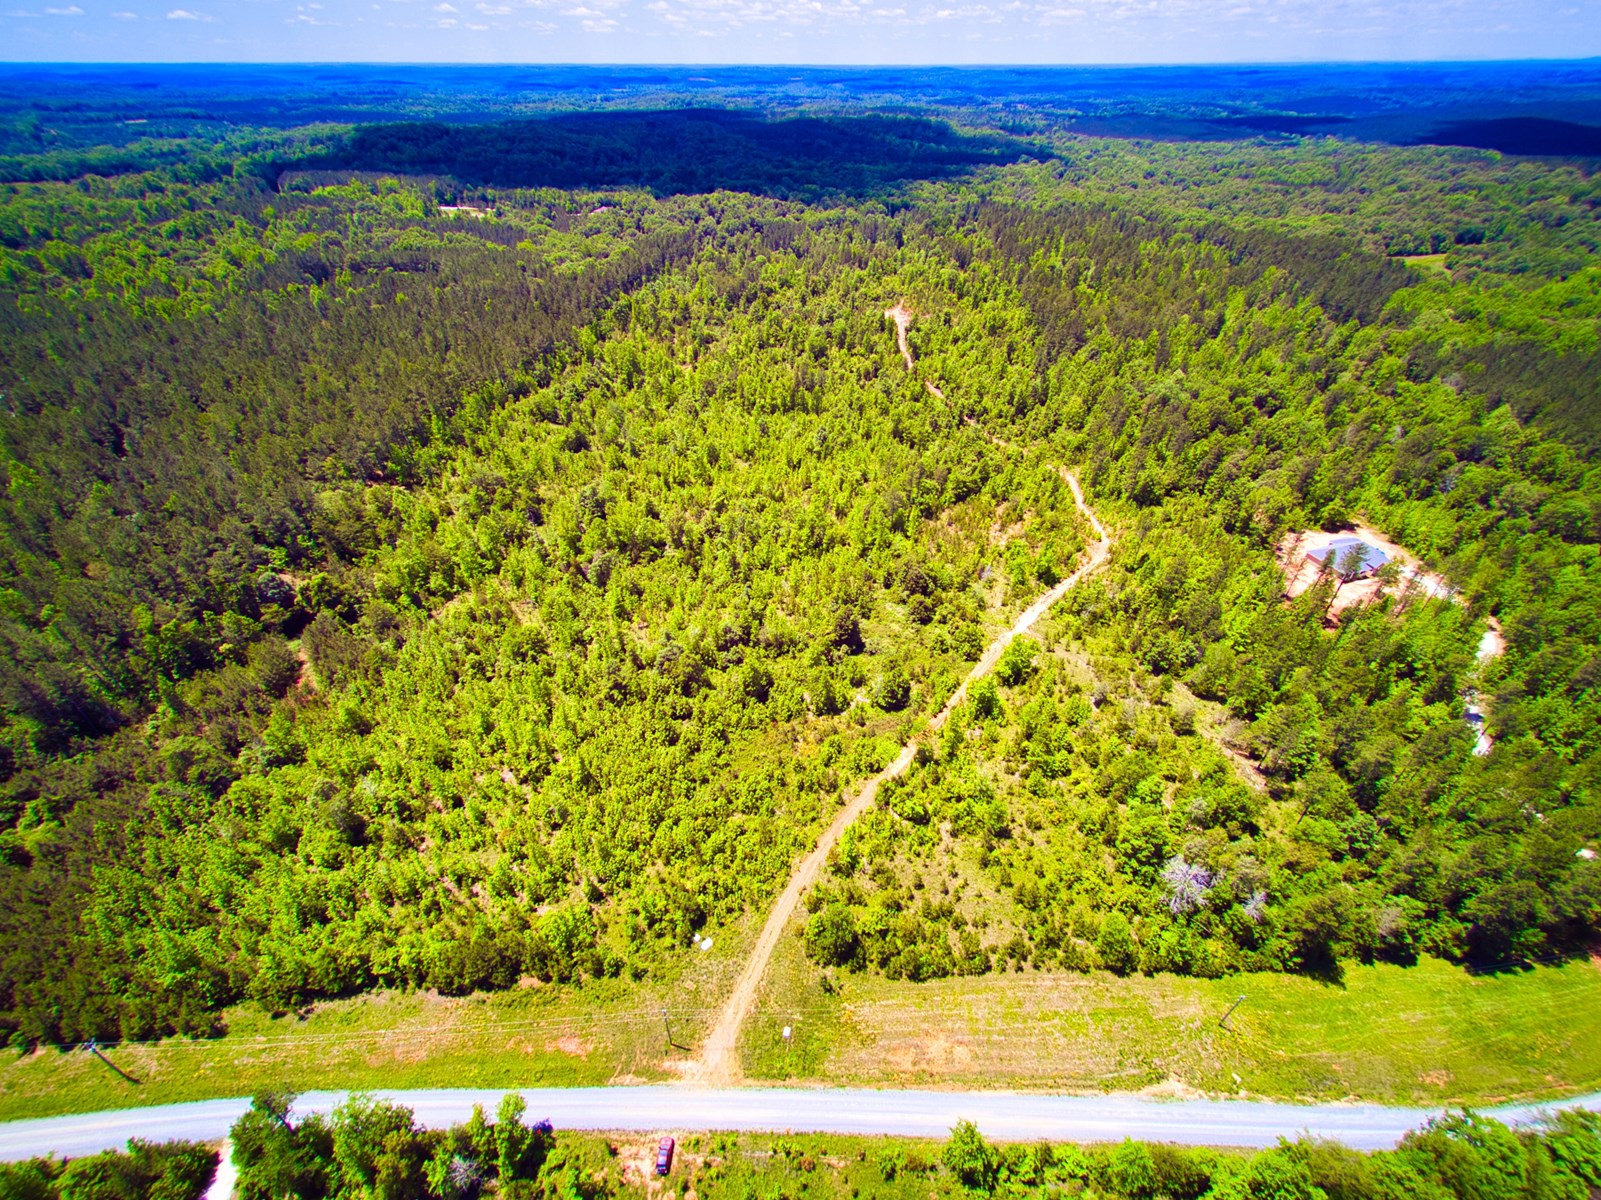 Acreage For Sale Near McConnells SC